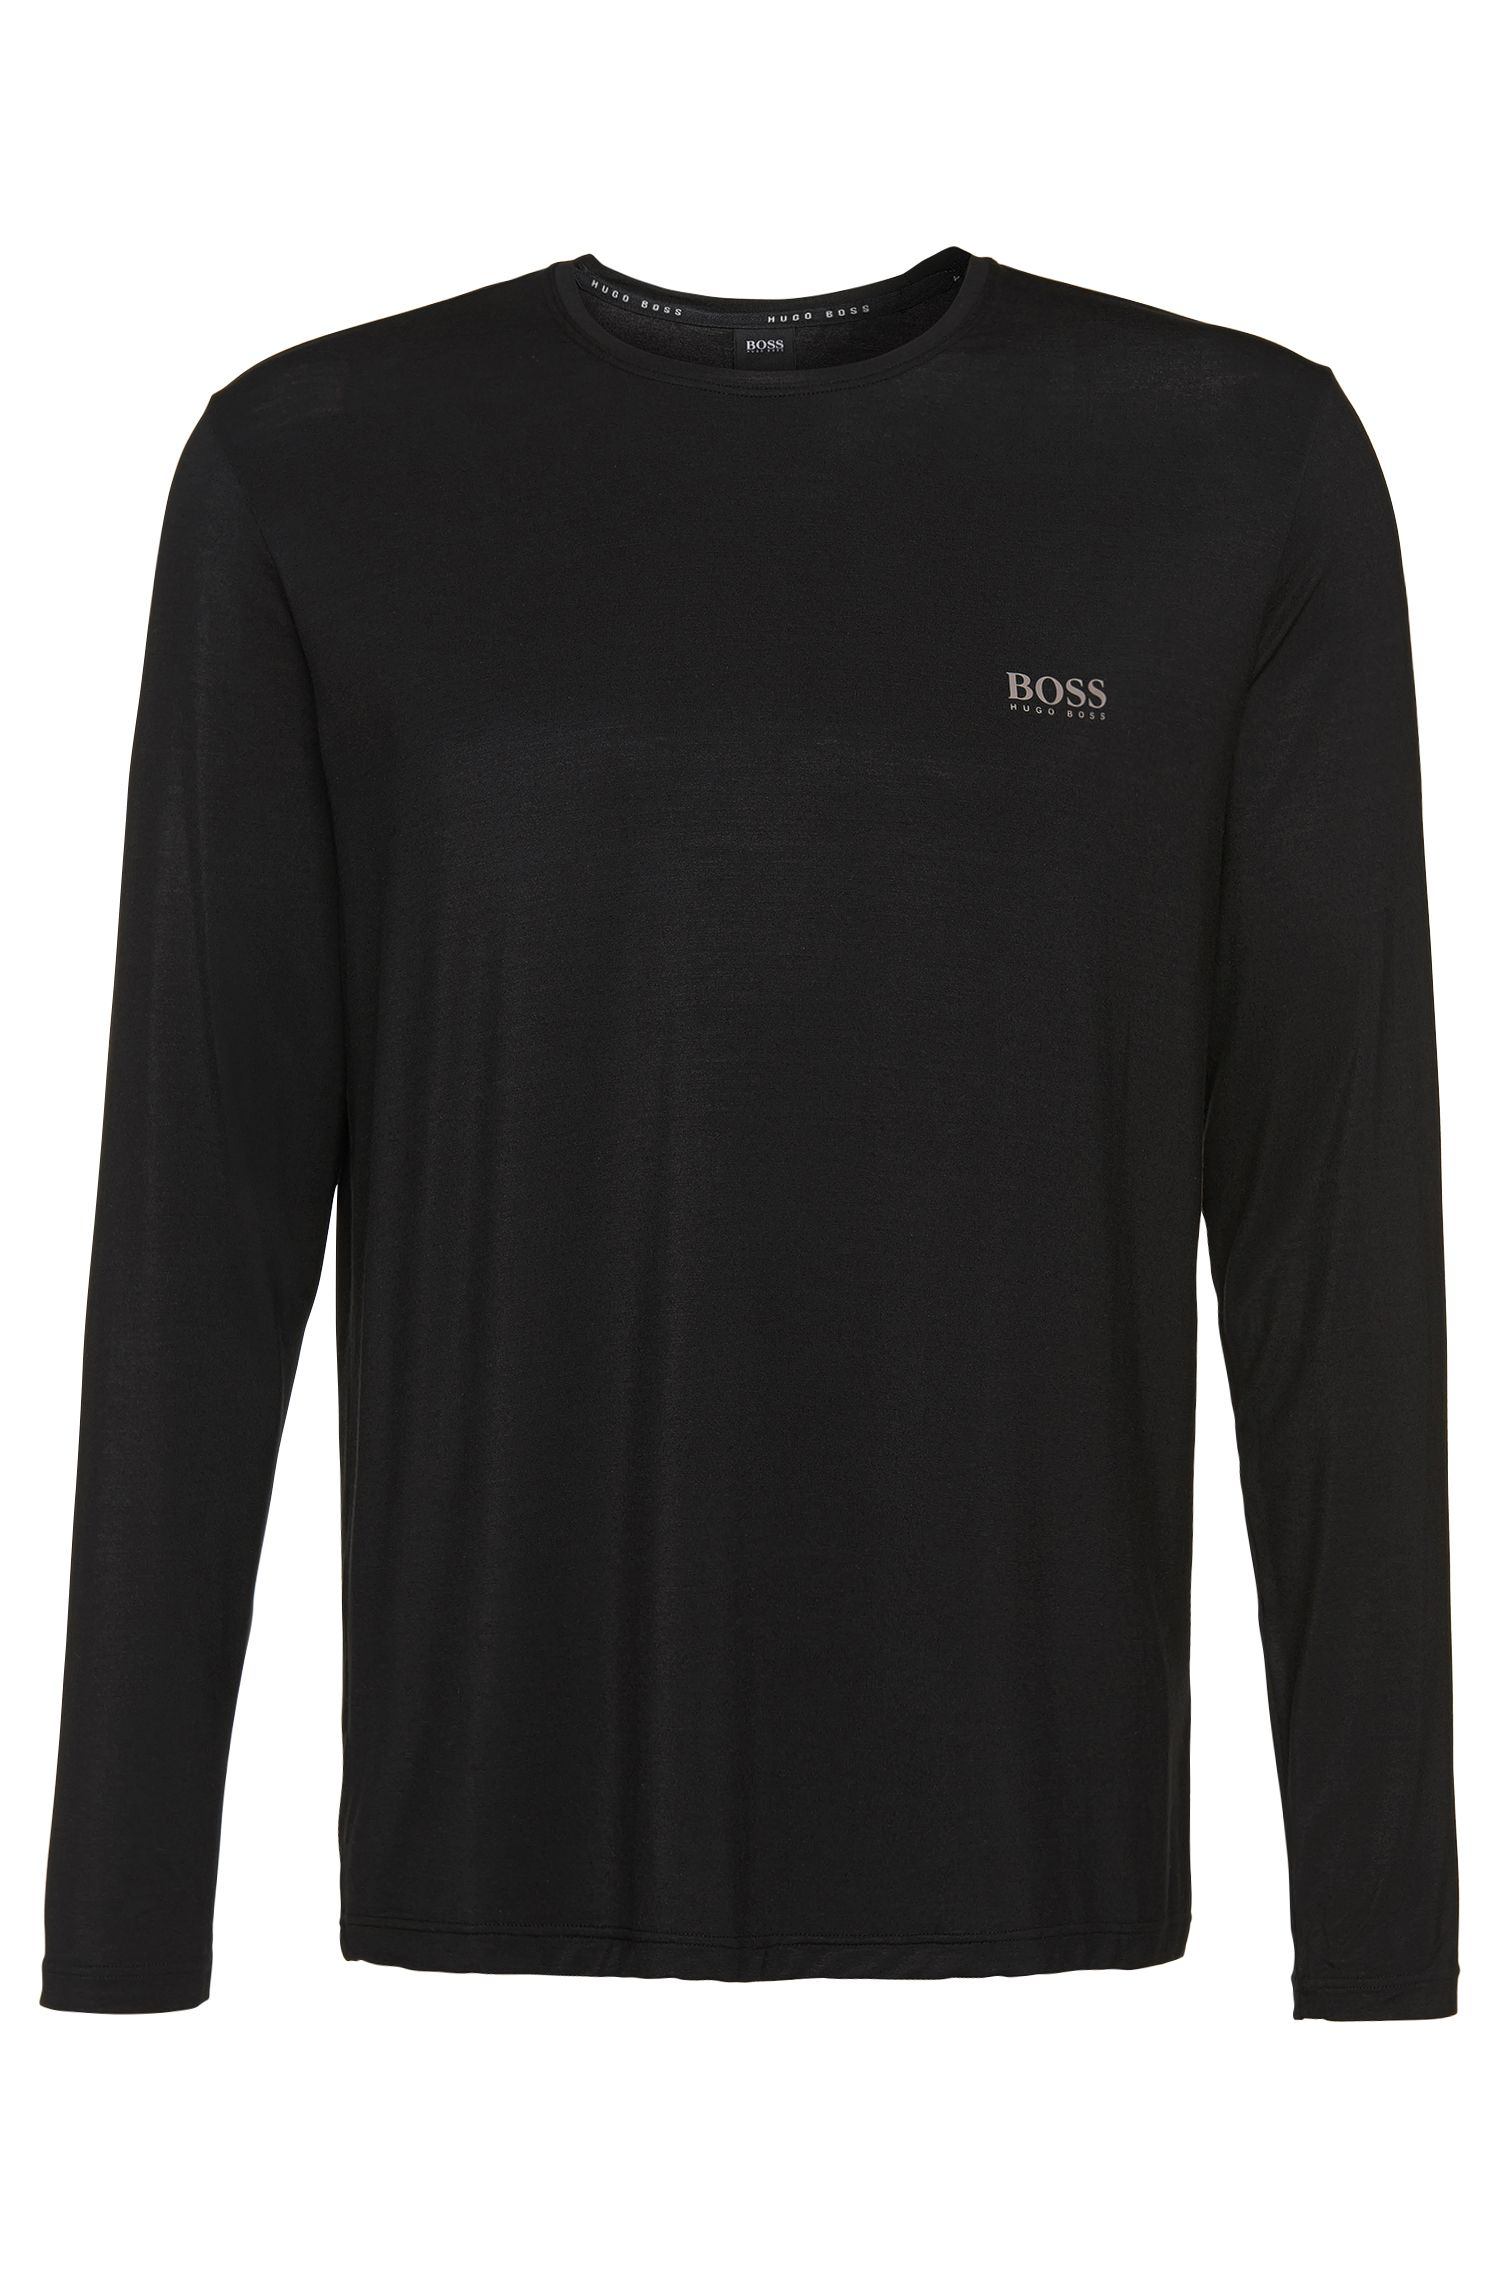 'Shirt RN LS' | Stretch Modal Long Sleeve T-Shirt